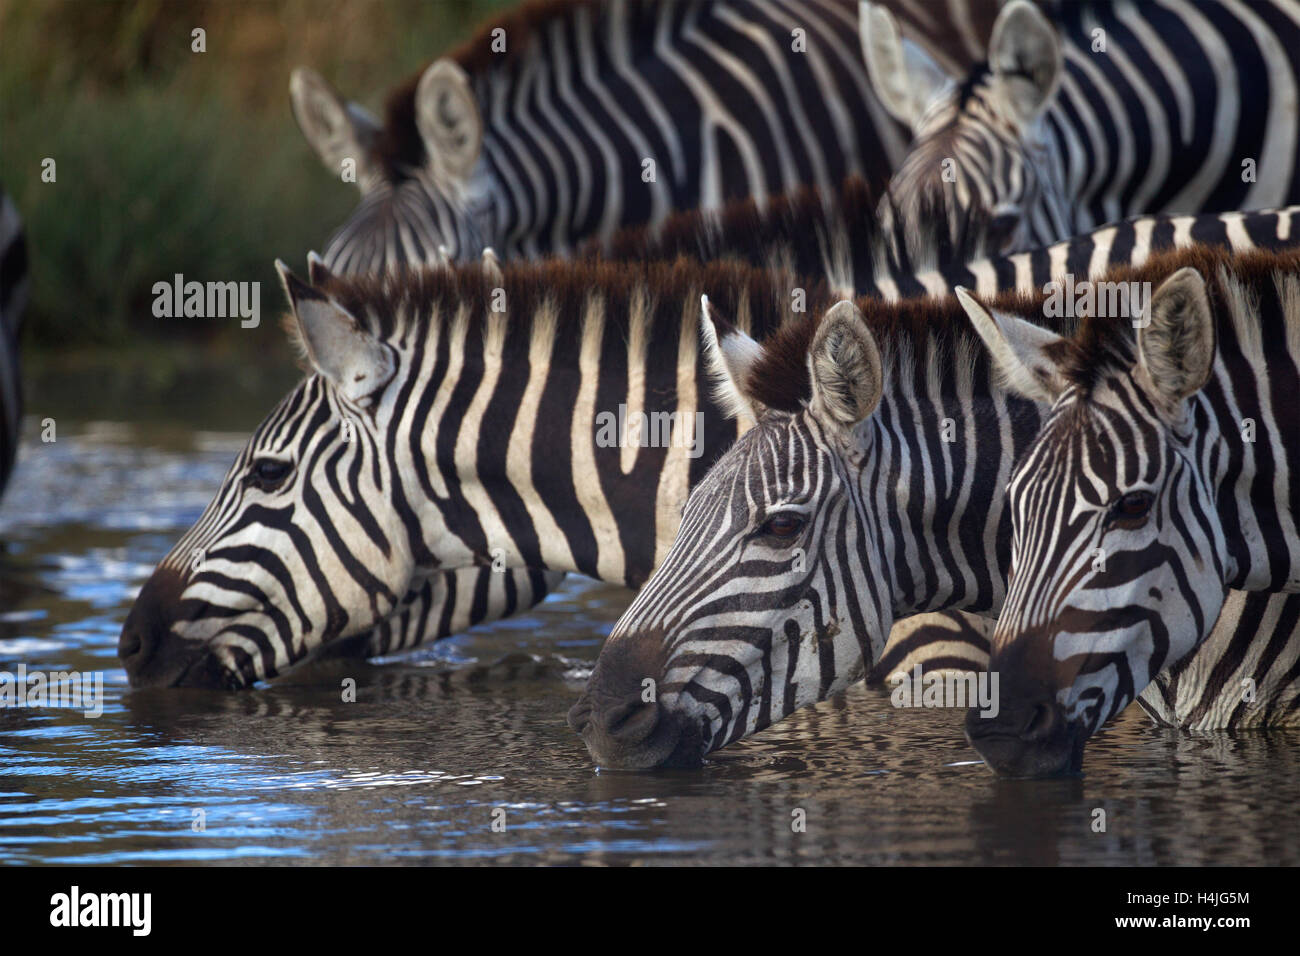 A herd of zebra quenching their thirst - Stock Image